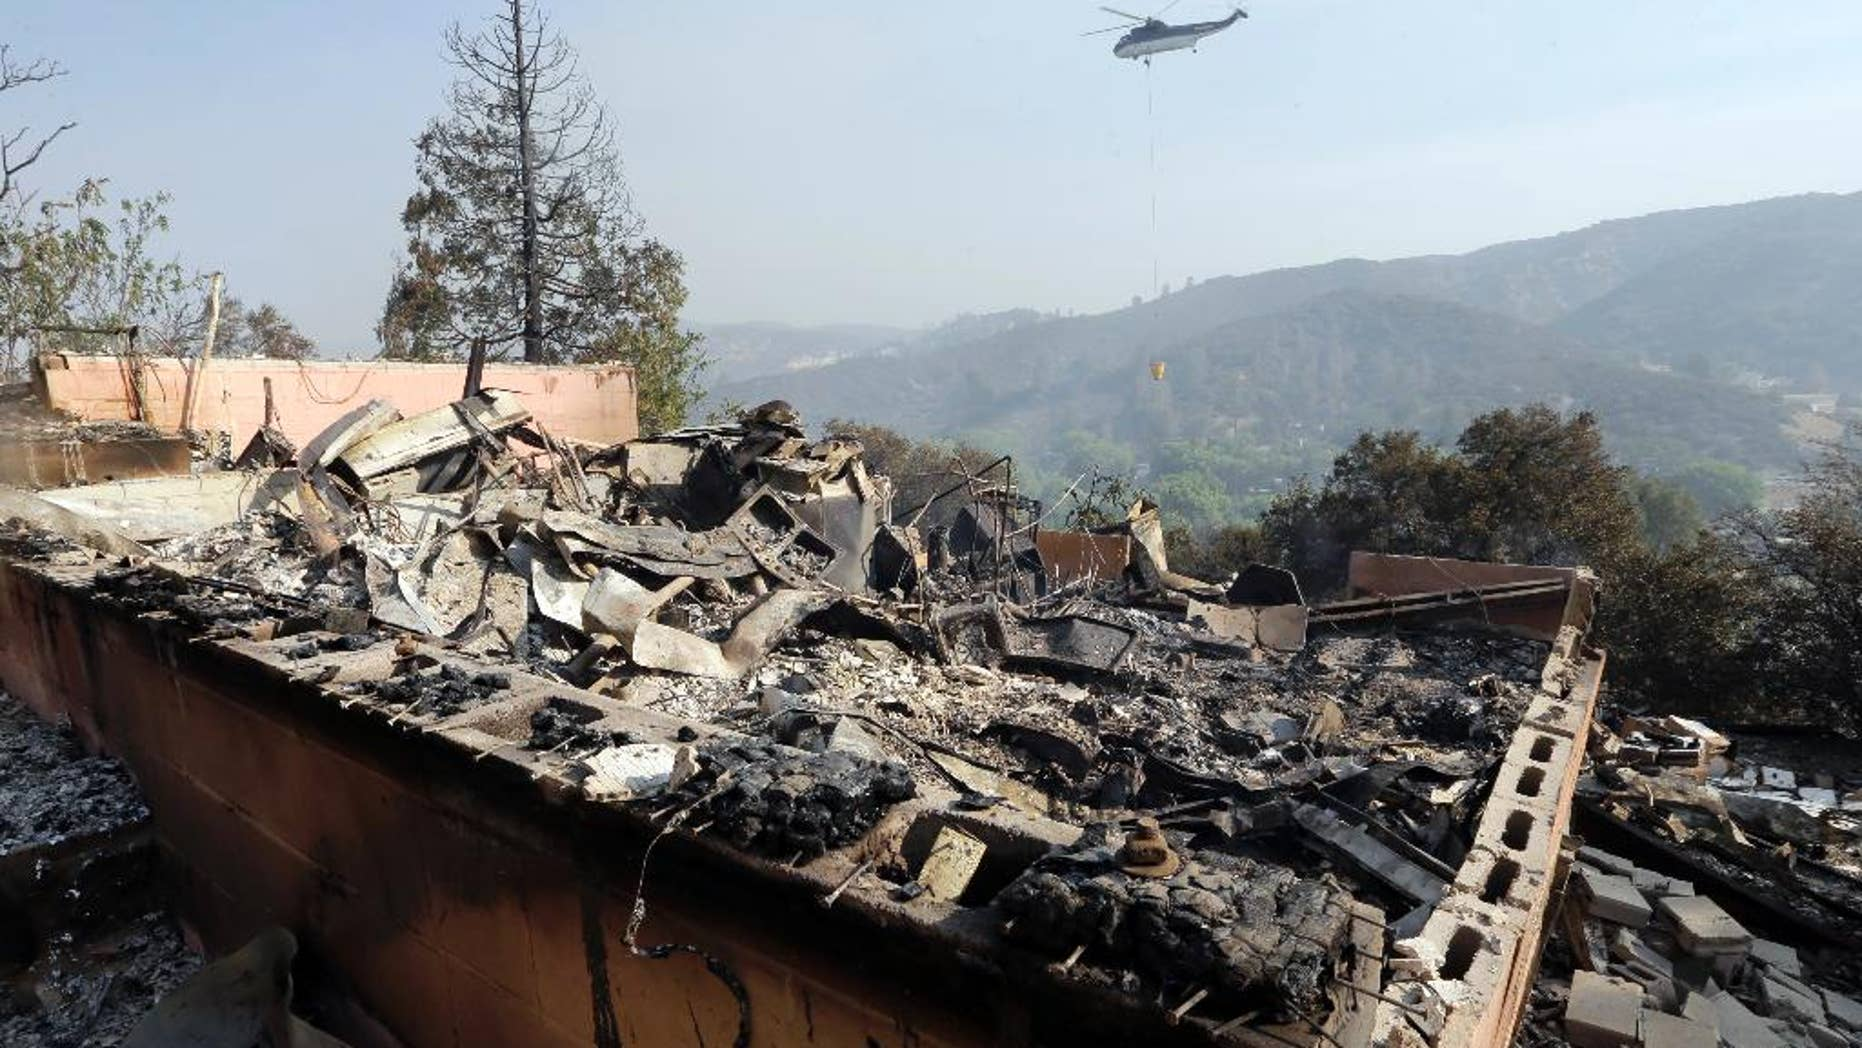 A firefighting helicopter carries a large water bucket behind a home that has been destroyed by a fire in Lake Hughes, Calif., in this June 2, 2013, photo.